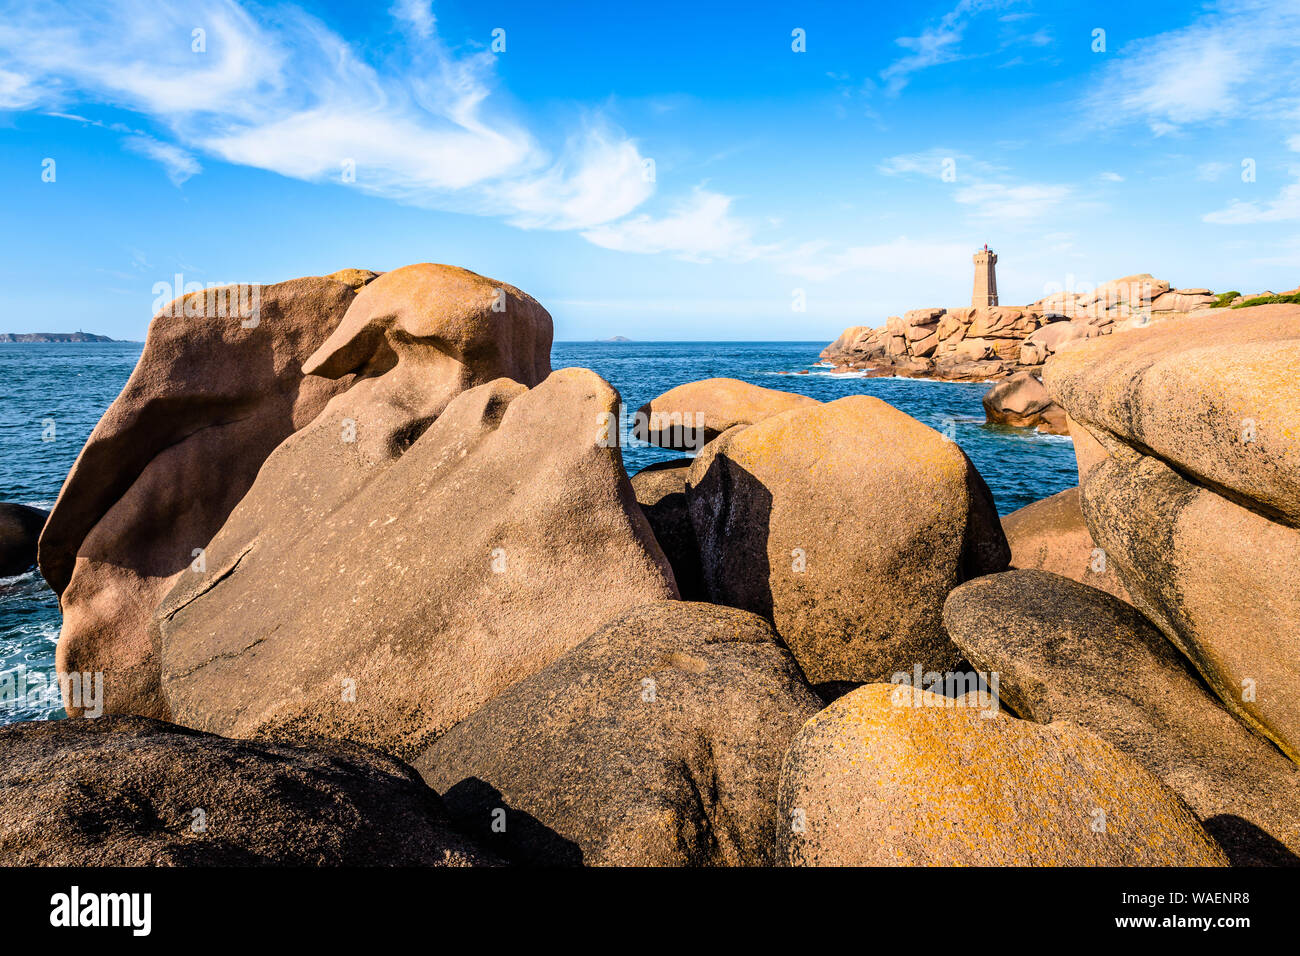 The Ploumanac'h lighthouse, named Mean Ruz, on the Pink Granite Coast in Perros-Guirec, northern Brittany, with large granite rocks in the foreground. Stock Photo